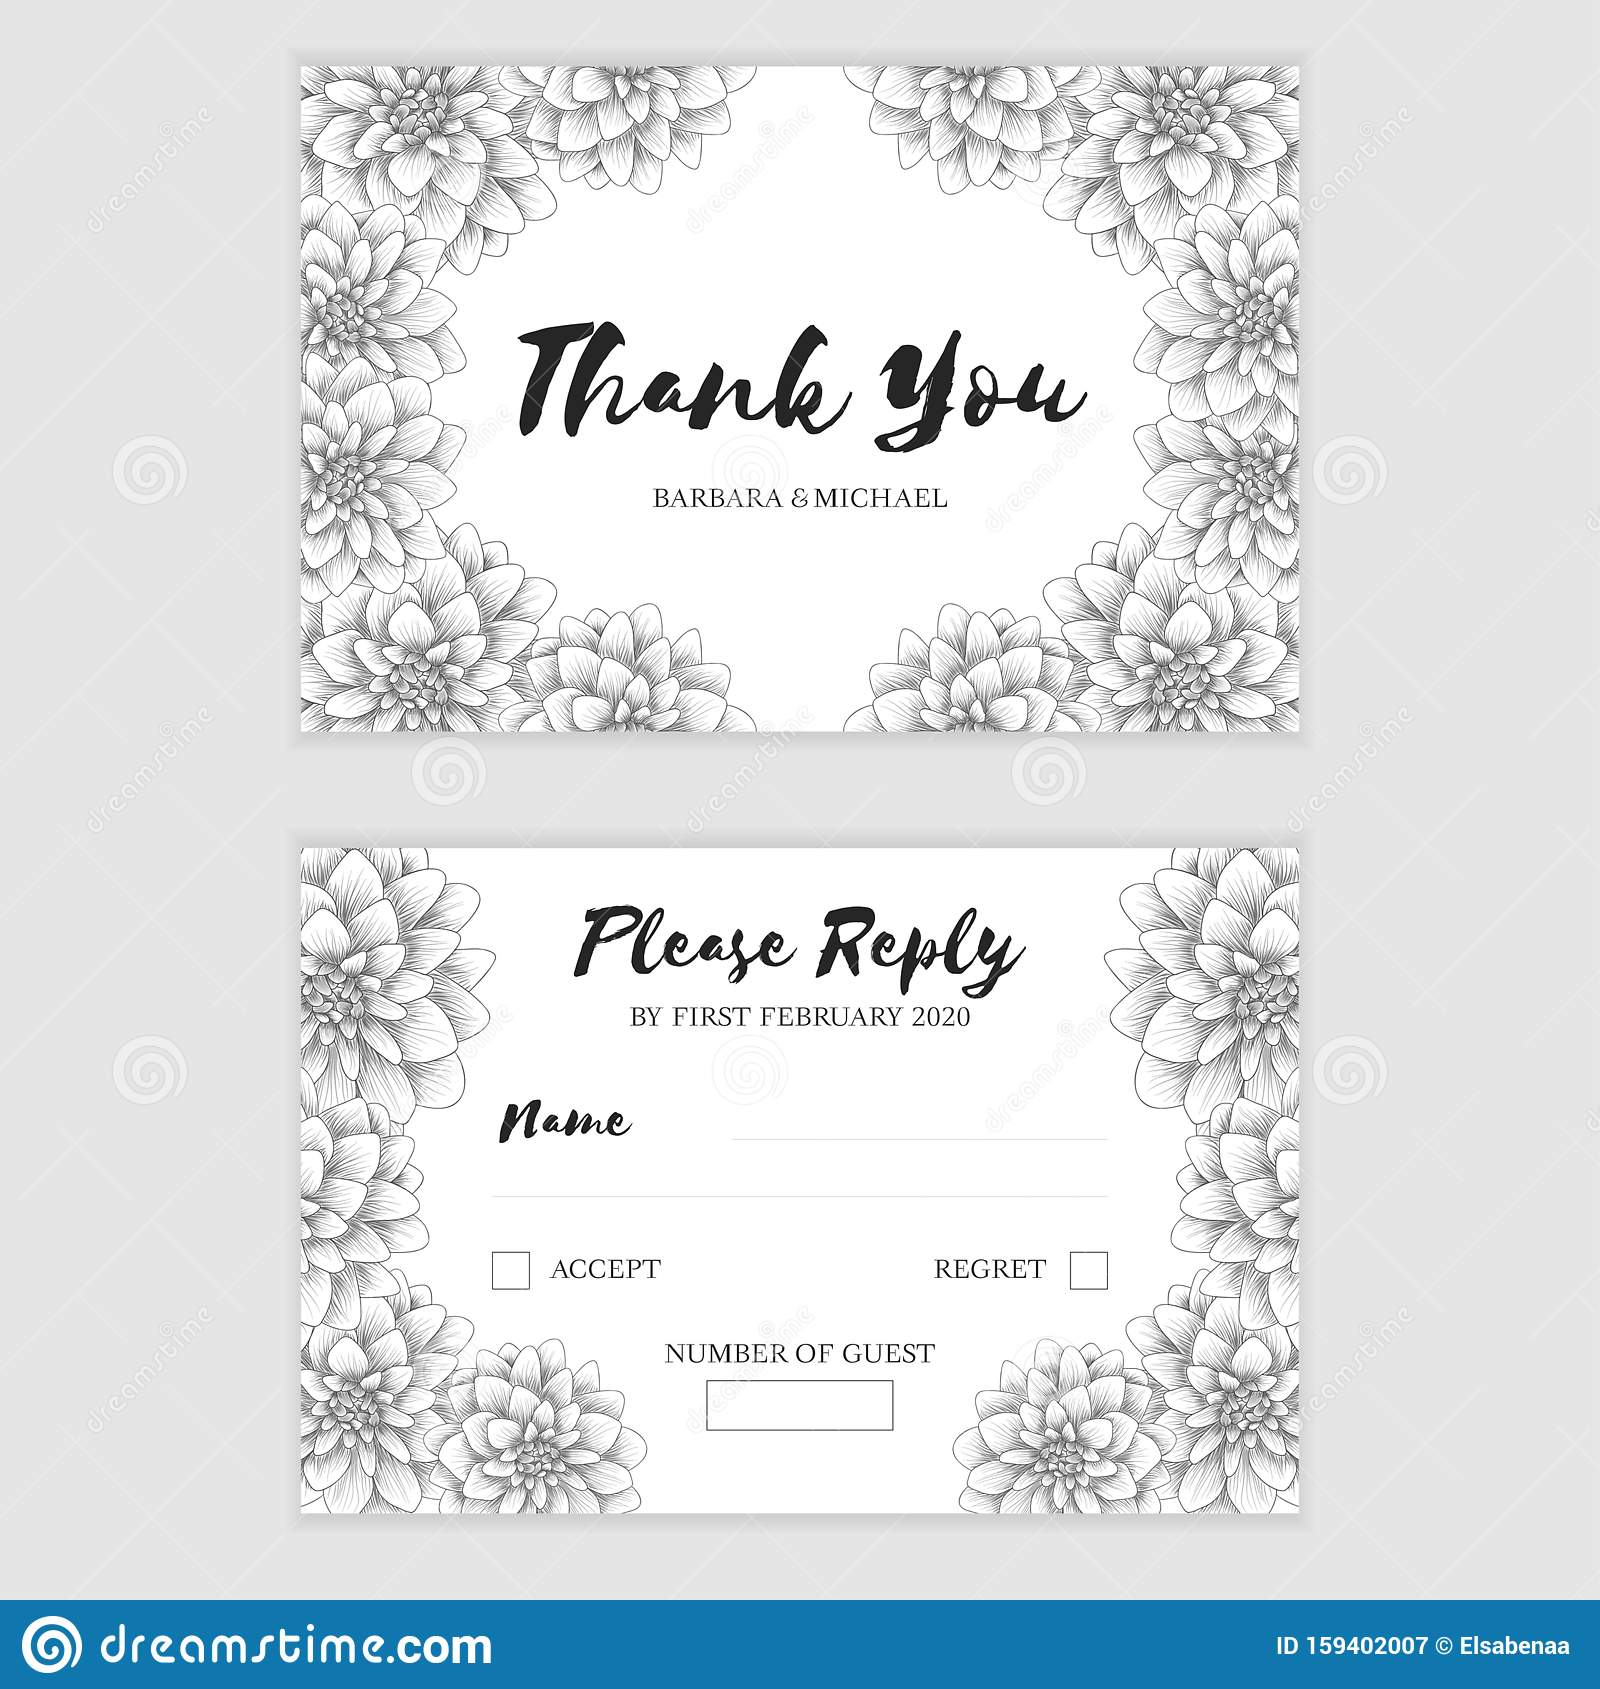 Wedding Response Card Template from thumbs.dreamstime.com